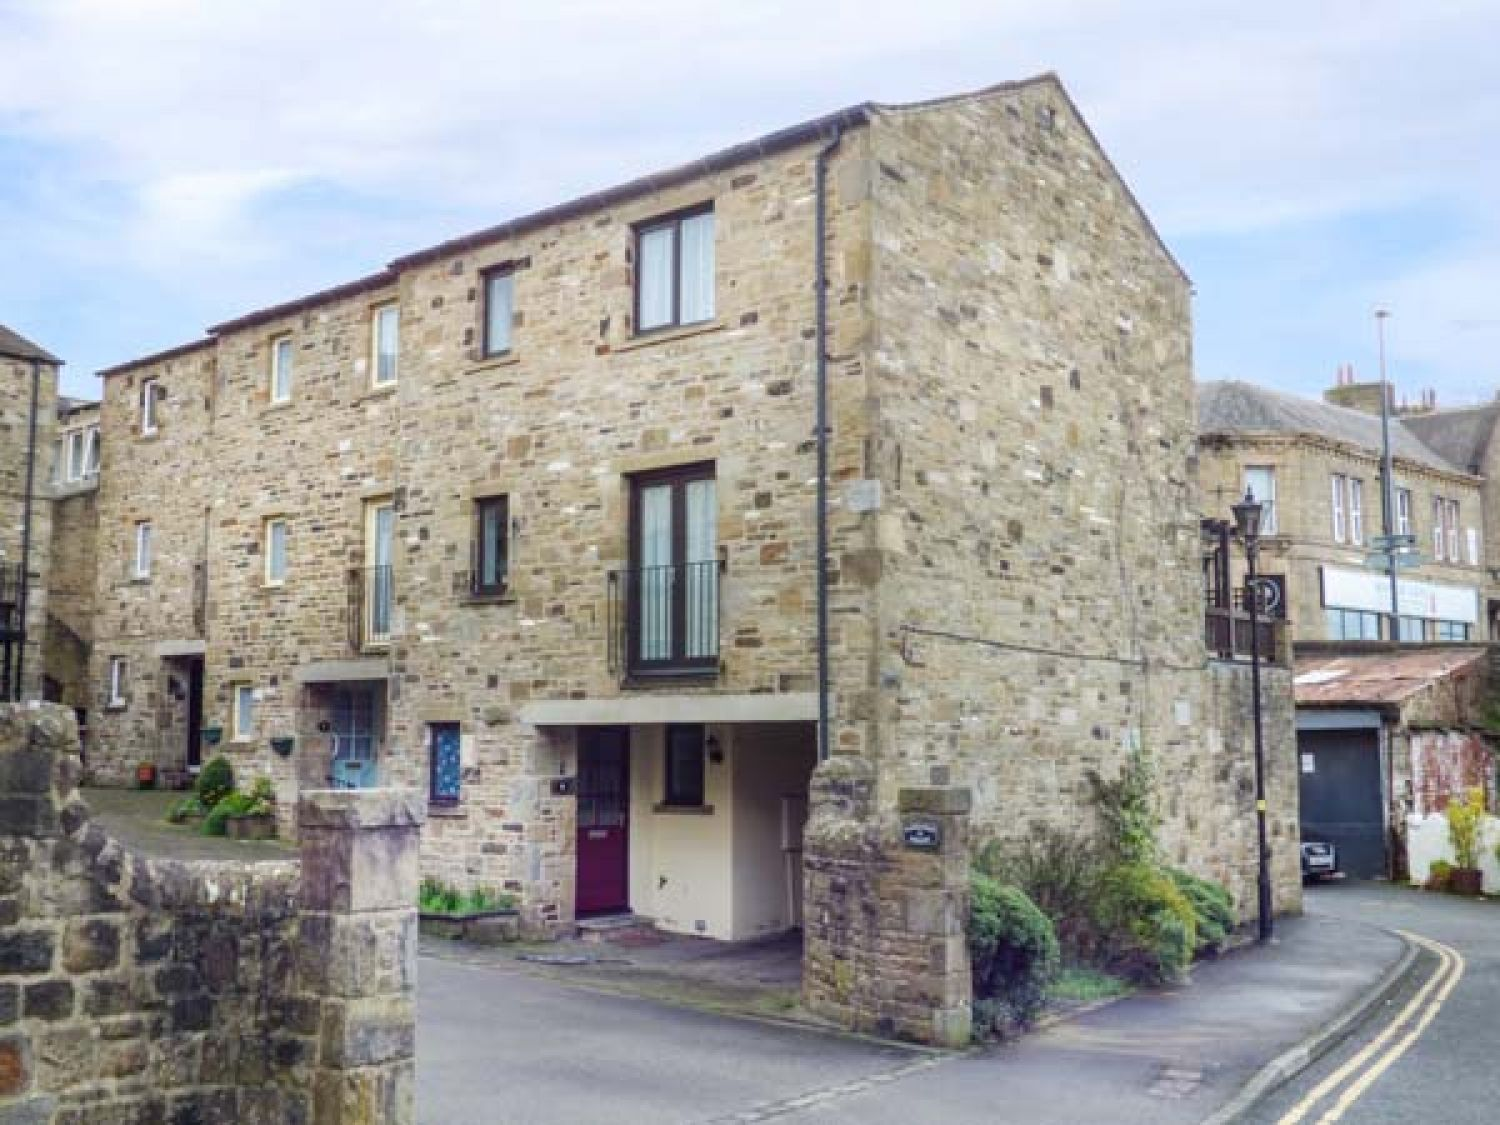 9 Navigation Square - Yorkshire Dales - 943976 - photo 1